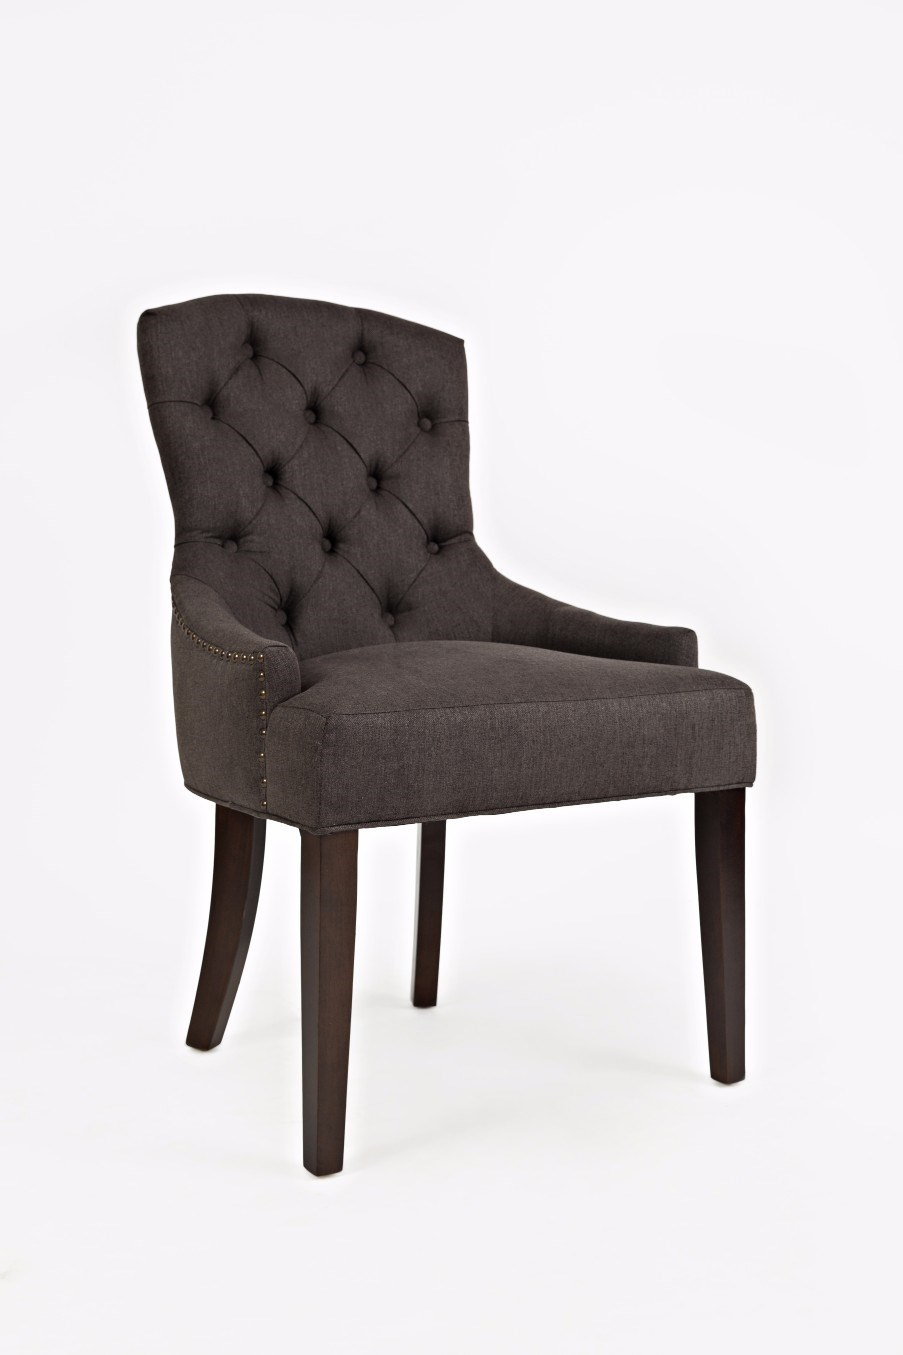 Jofran geneva hills pierce ch charcoal upholstered side chair with tufted back gill brothers furniture dining side chairs